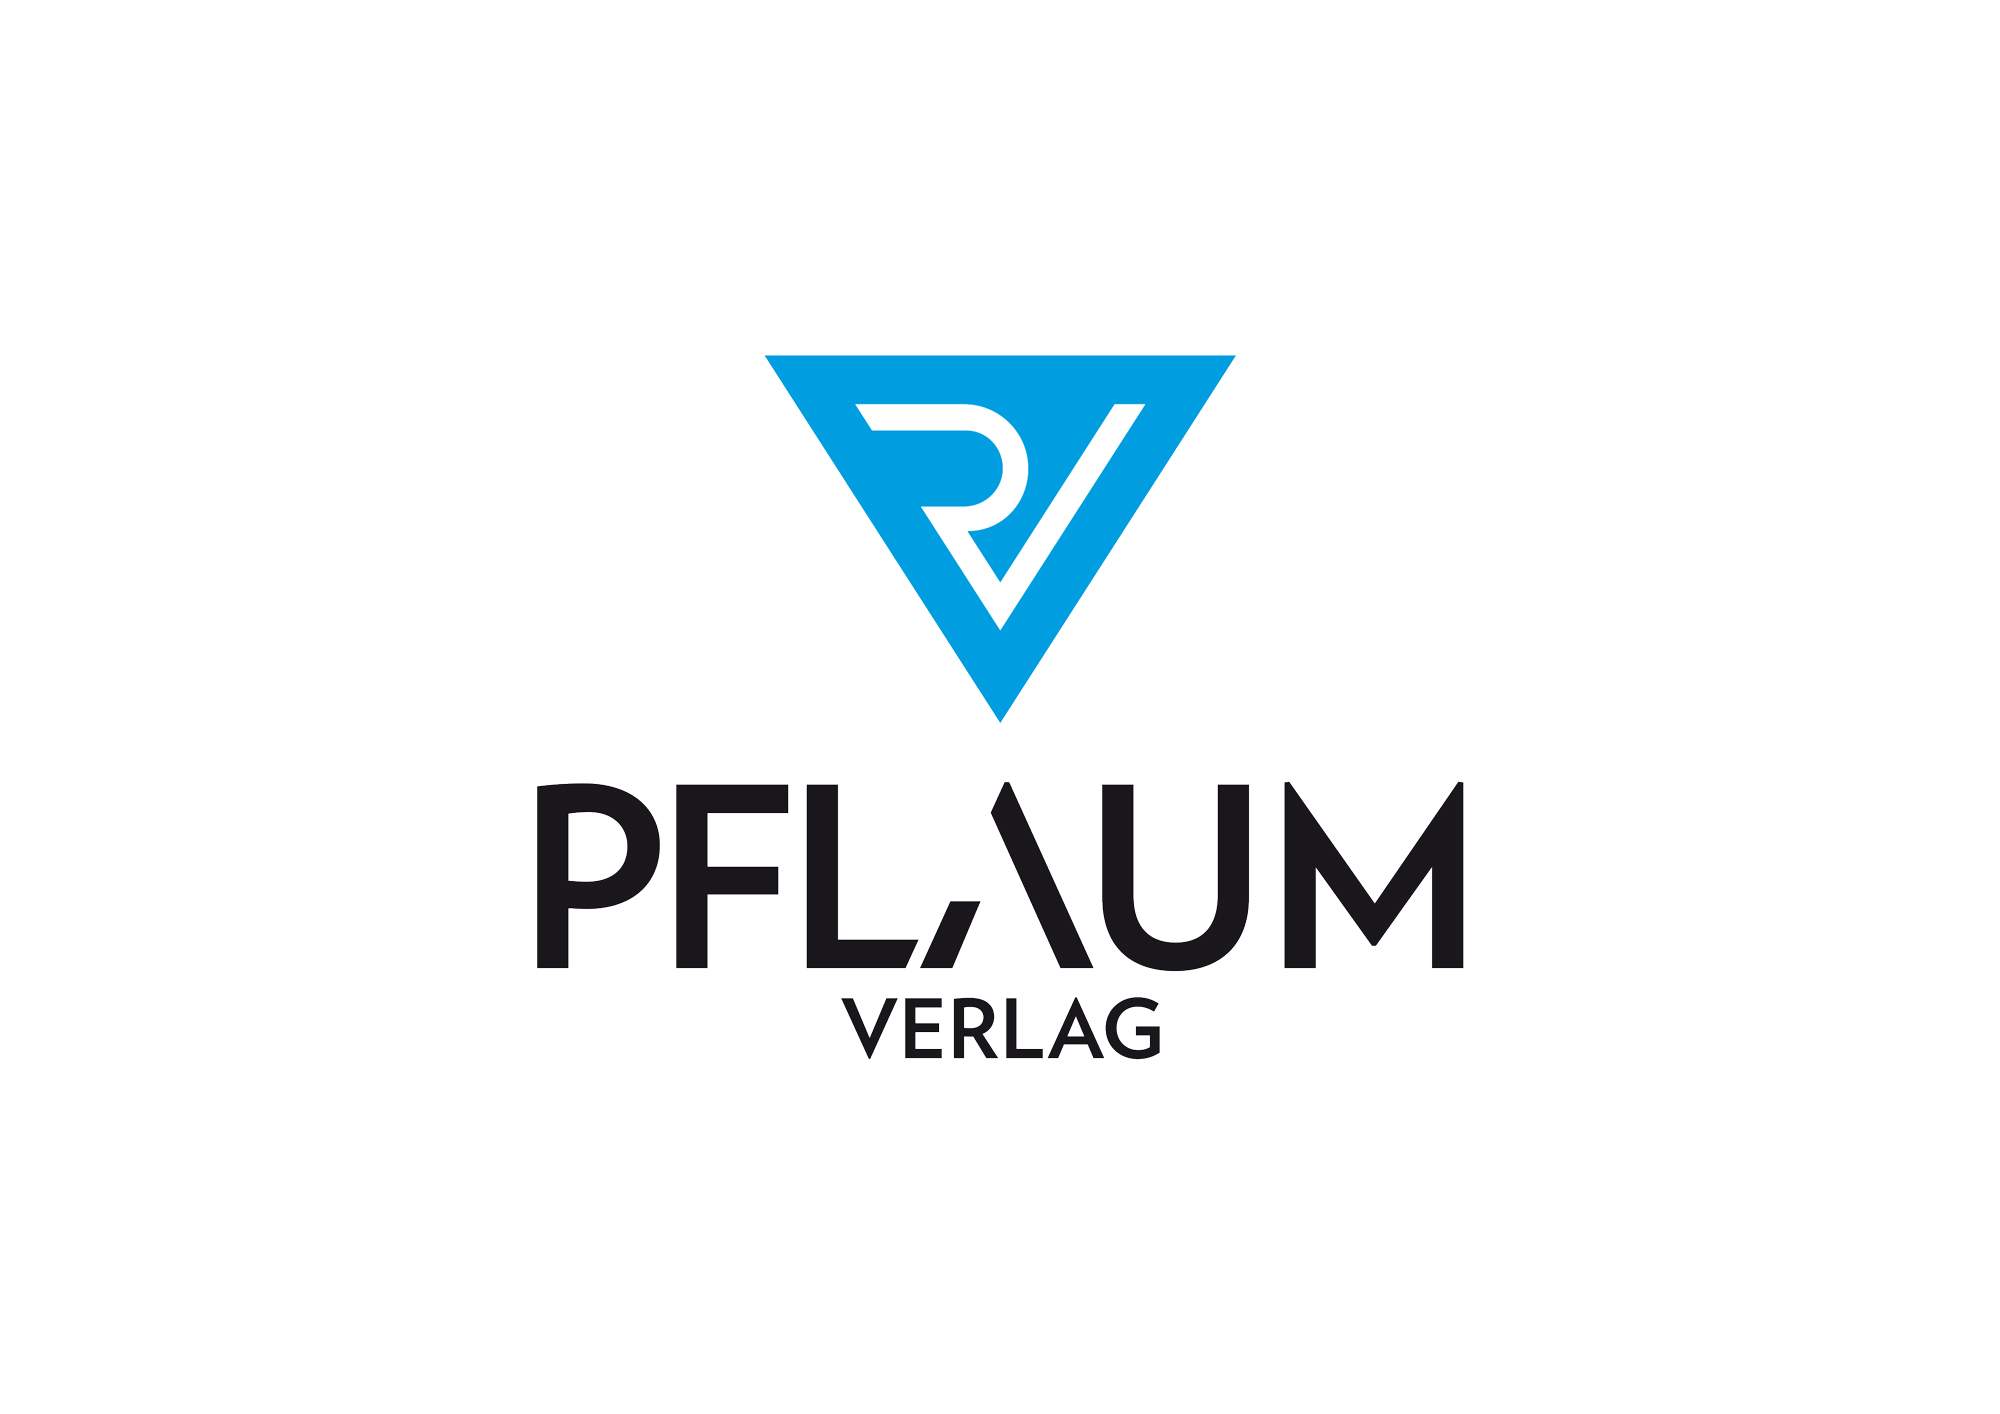 Pflaum-Verlag_Logo-Ver-Full_Color.jpg?fit=2000%2C1414